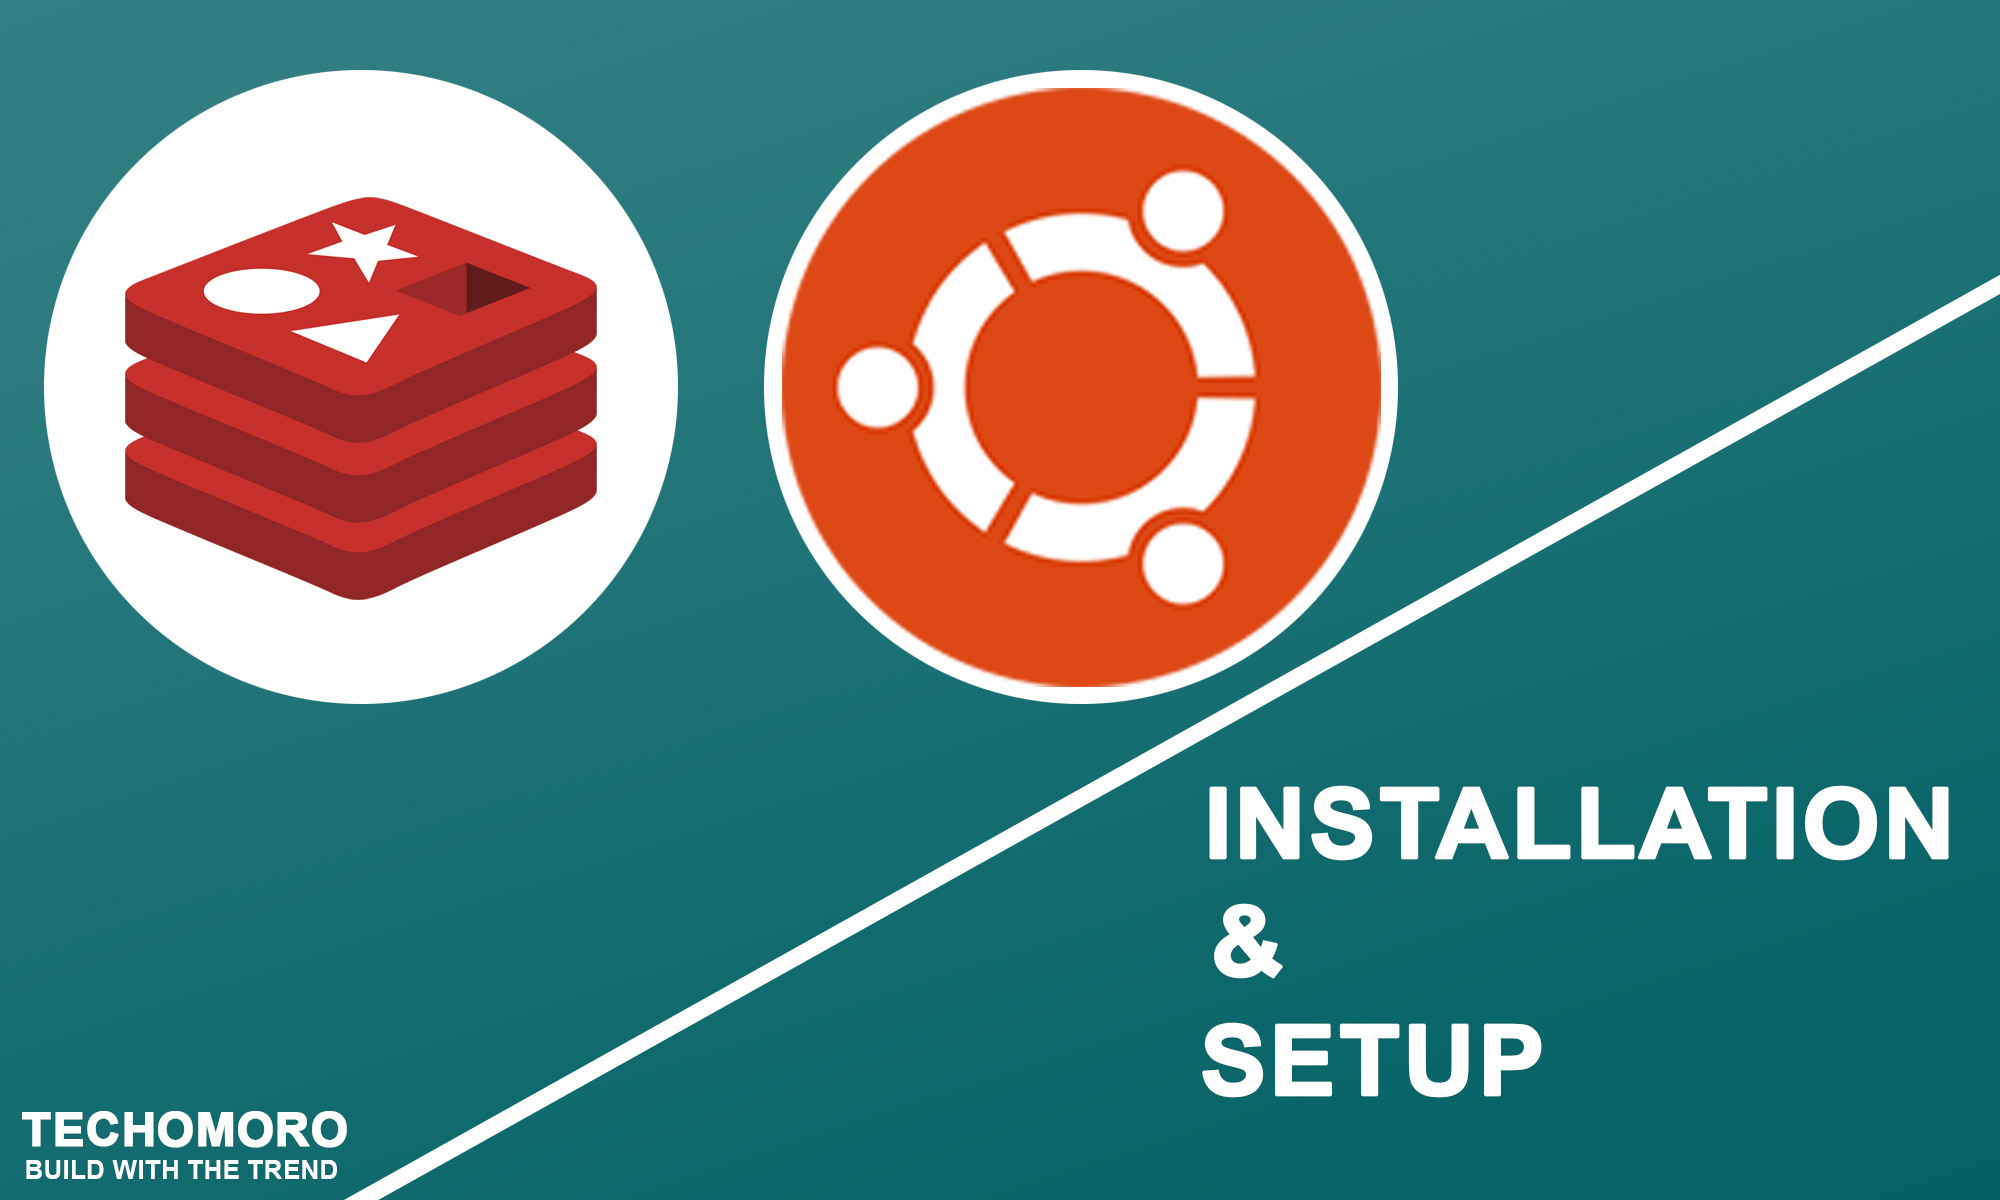 How to Install Redis on Ubuntu 19.04 (Disco Dingo)